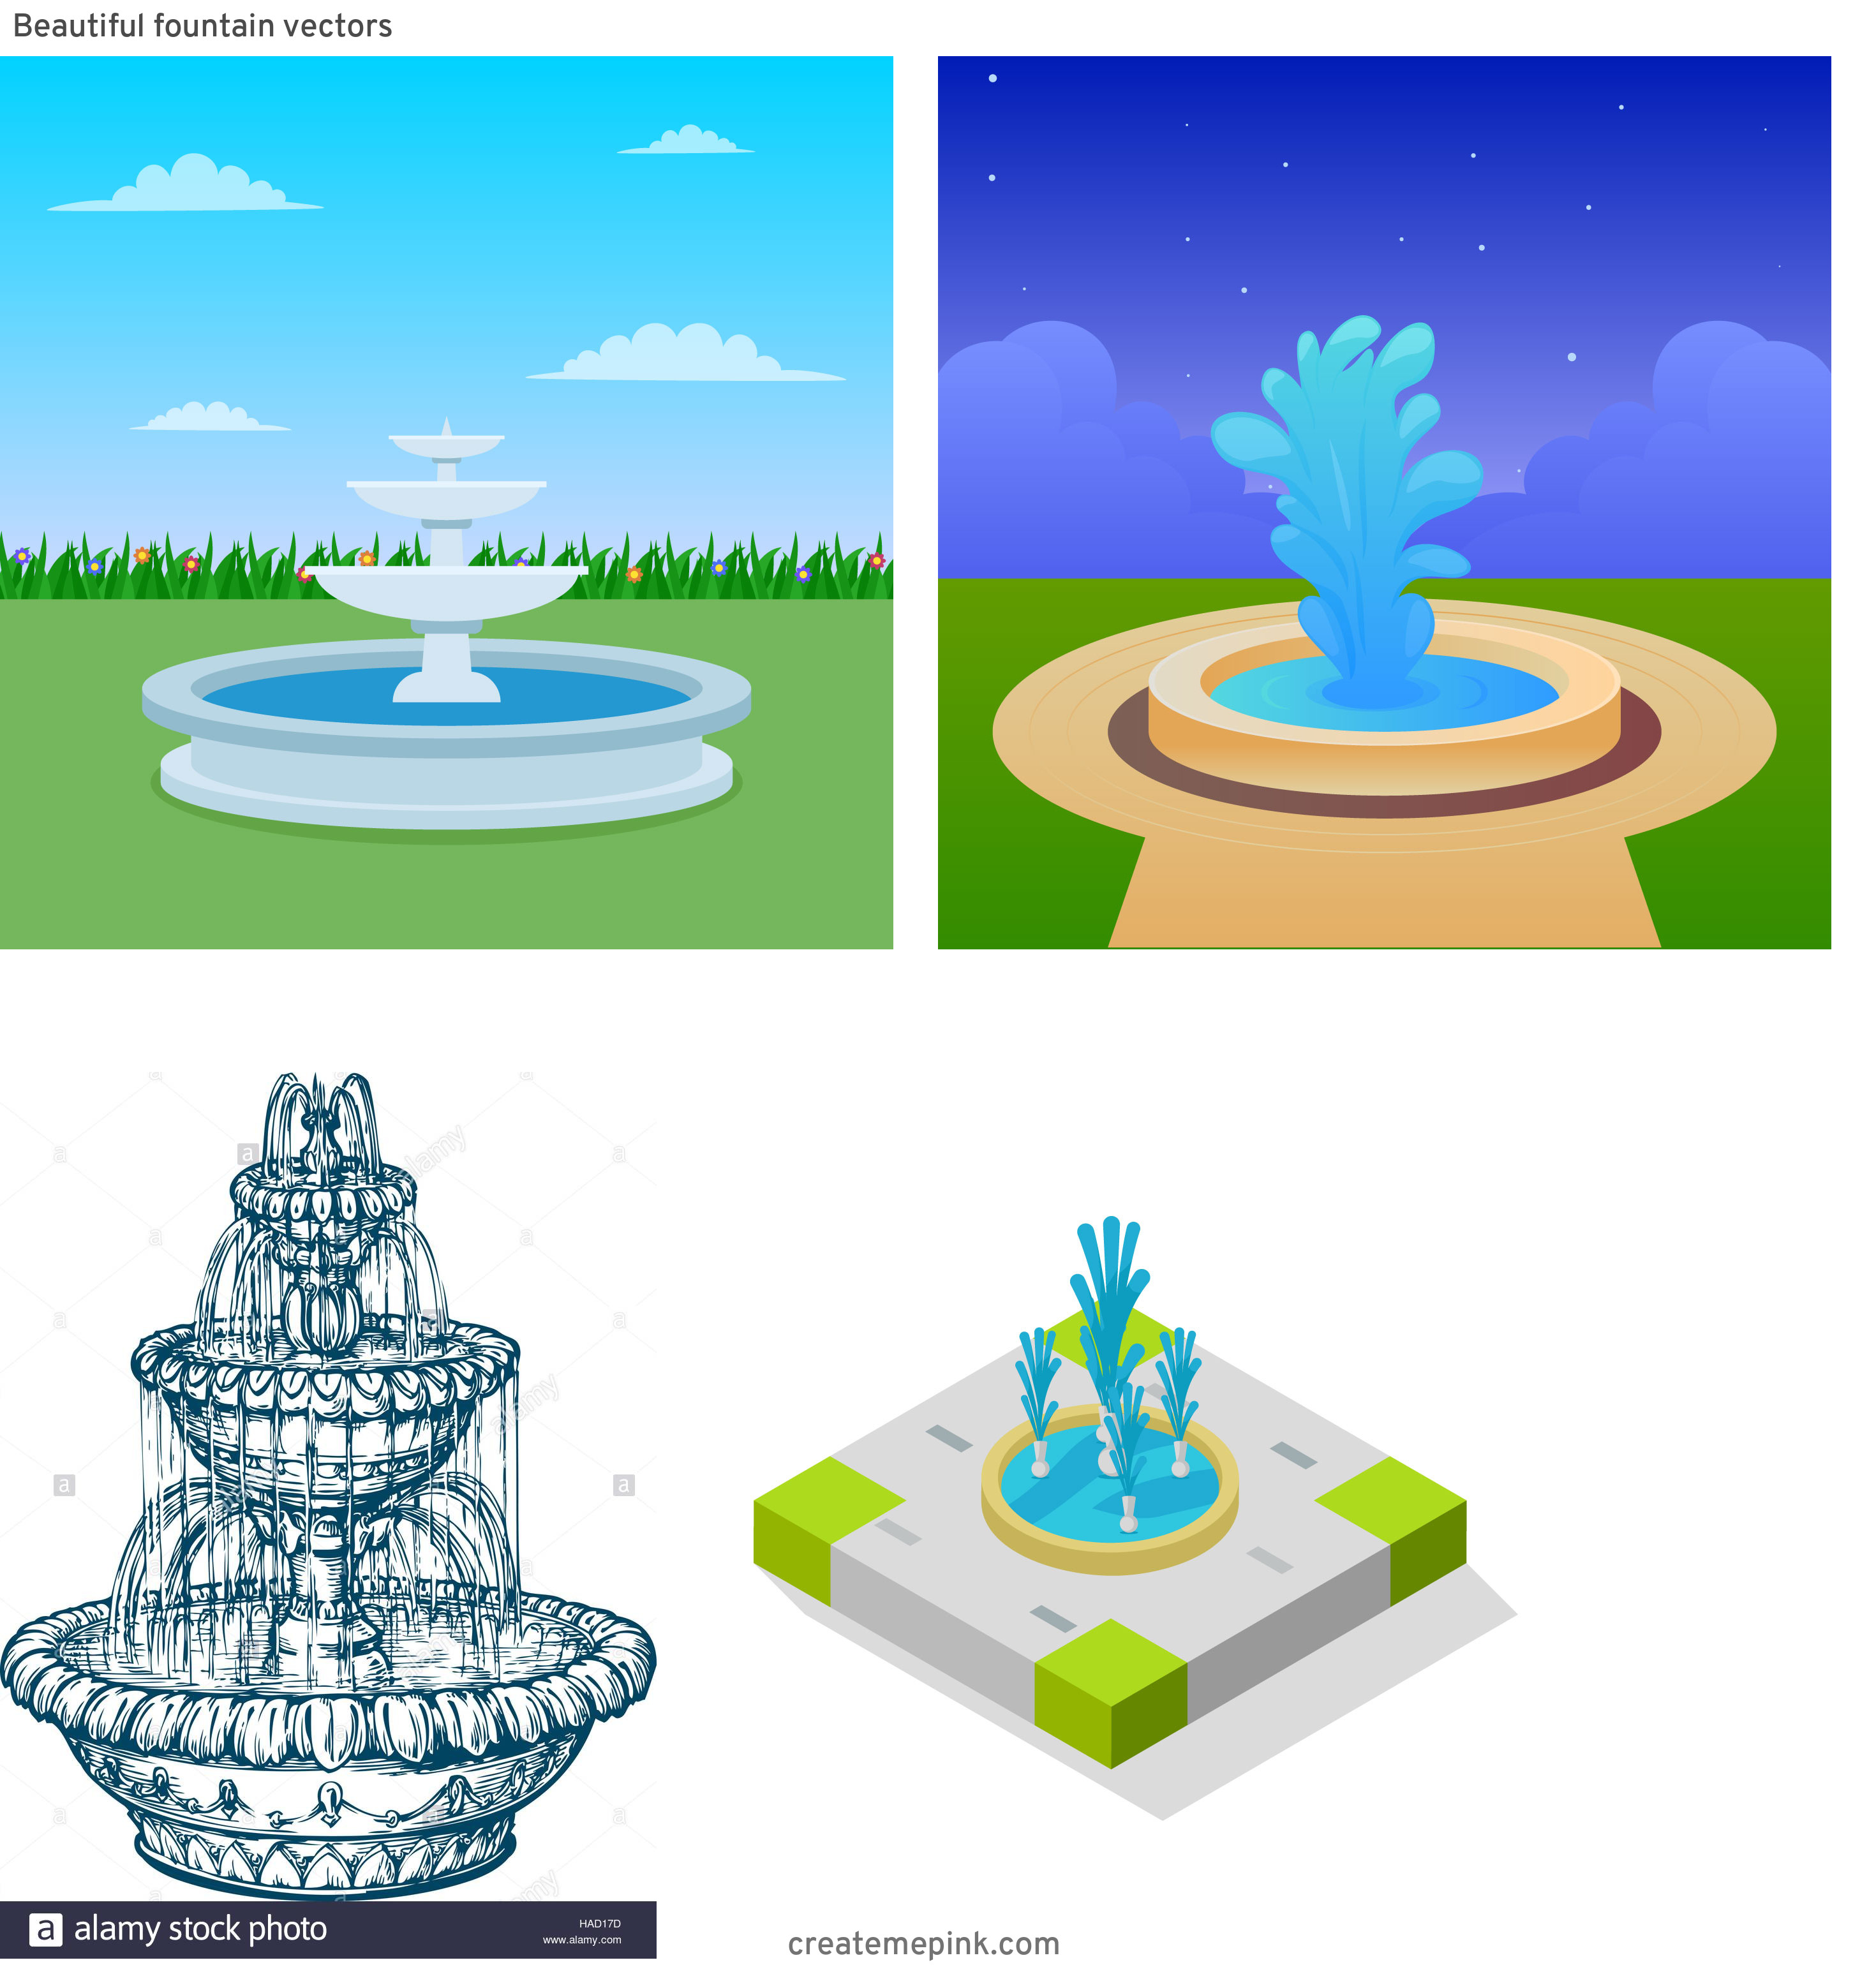 Pretty Fountain Vectors: Beautiful Fountain Vectors